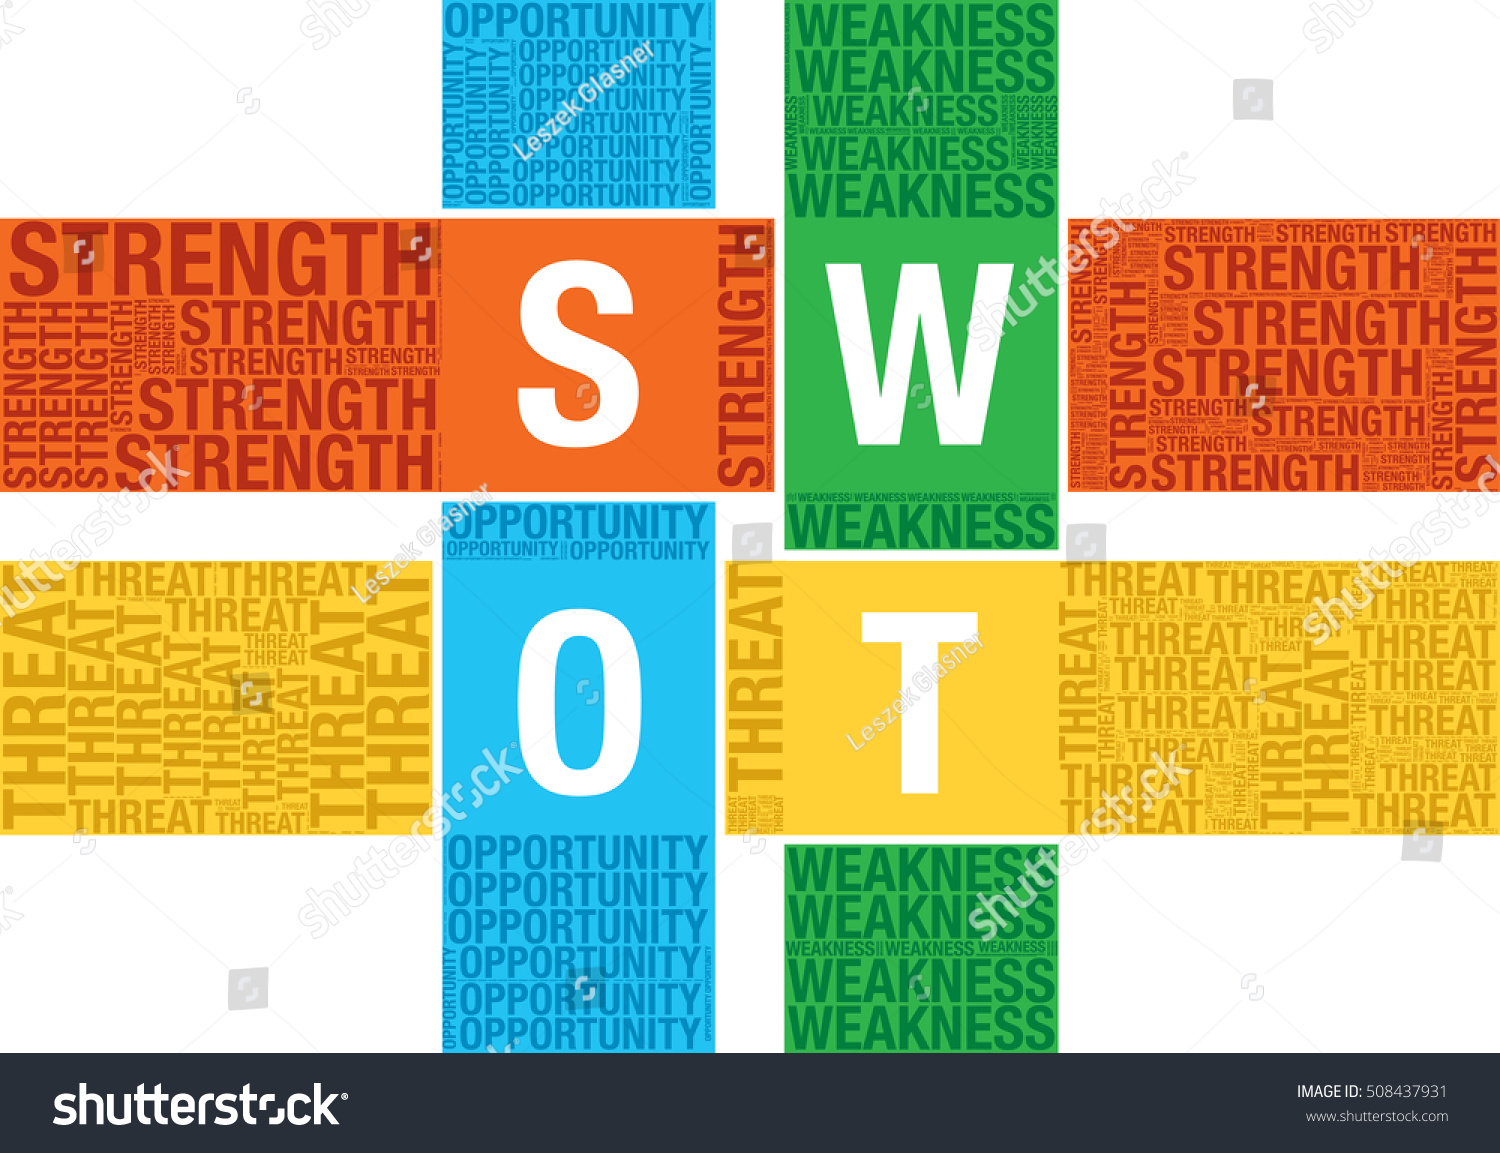 cloud computing swot analysis ppt Essays - largest database of quality sample essays and research papers on cloud computing swot analysis ppt.